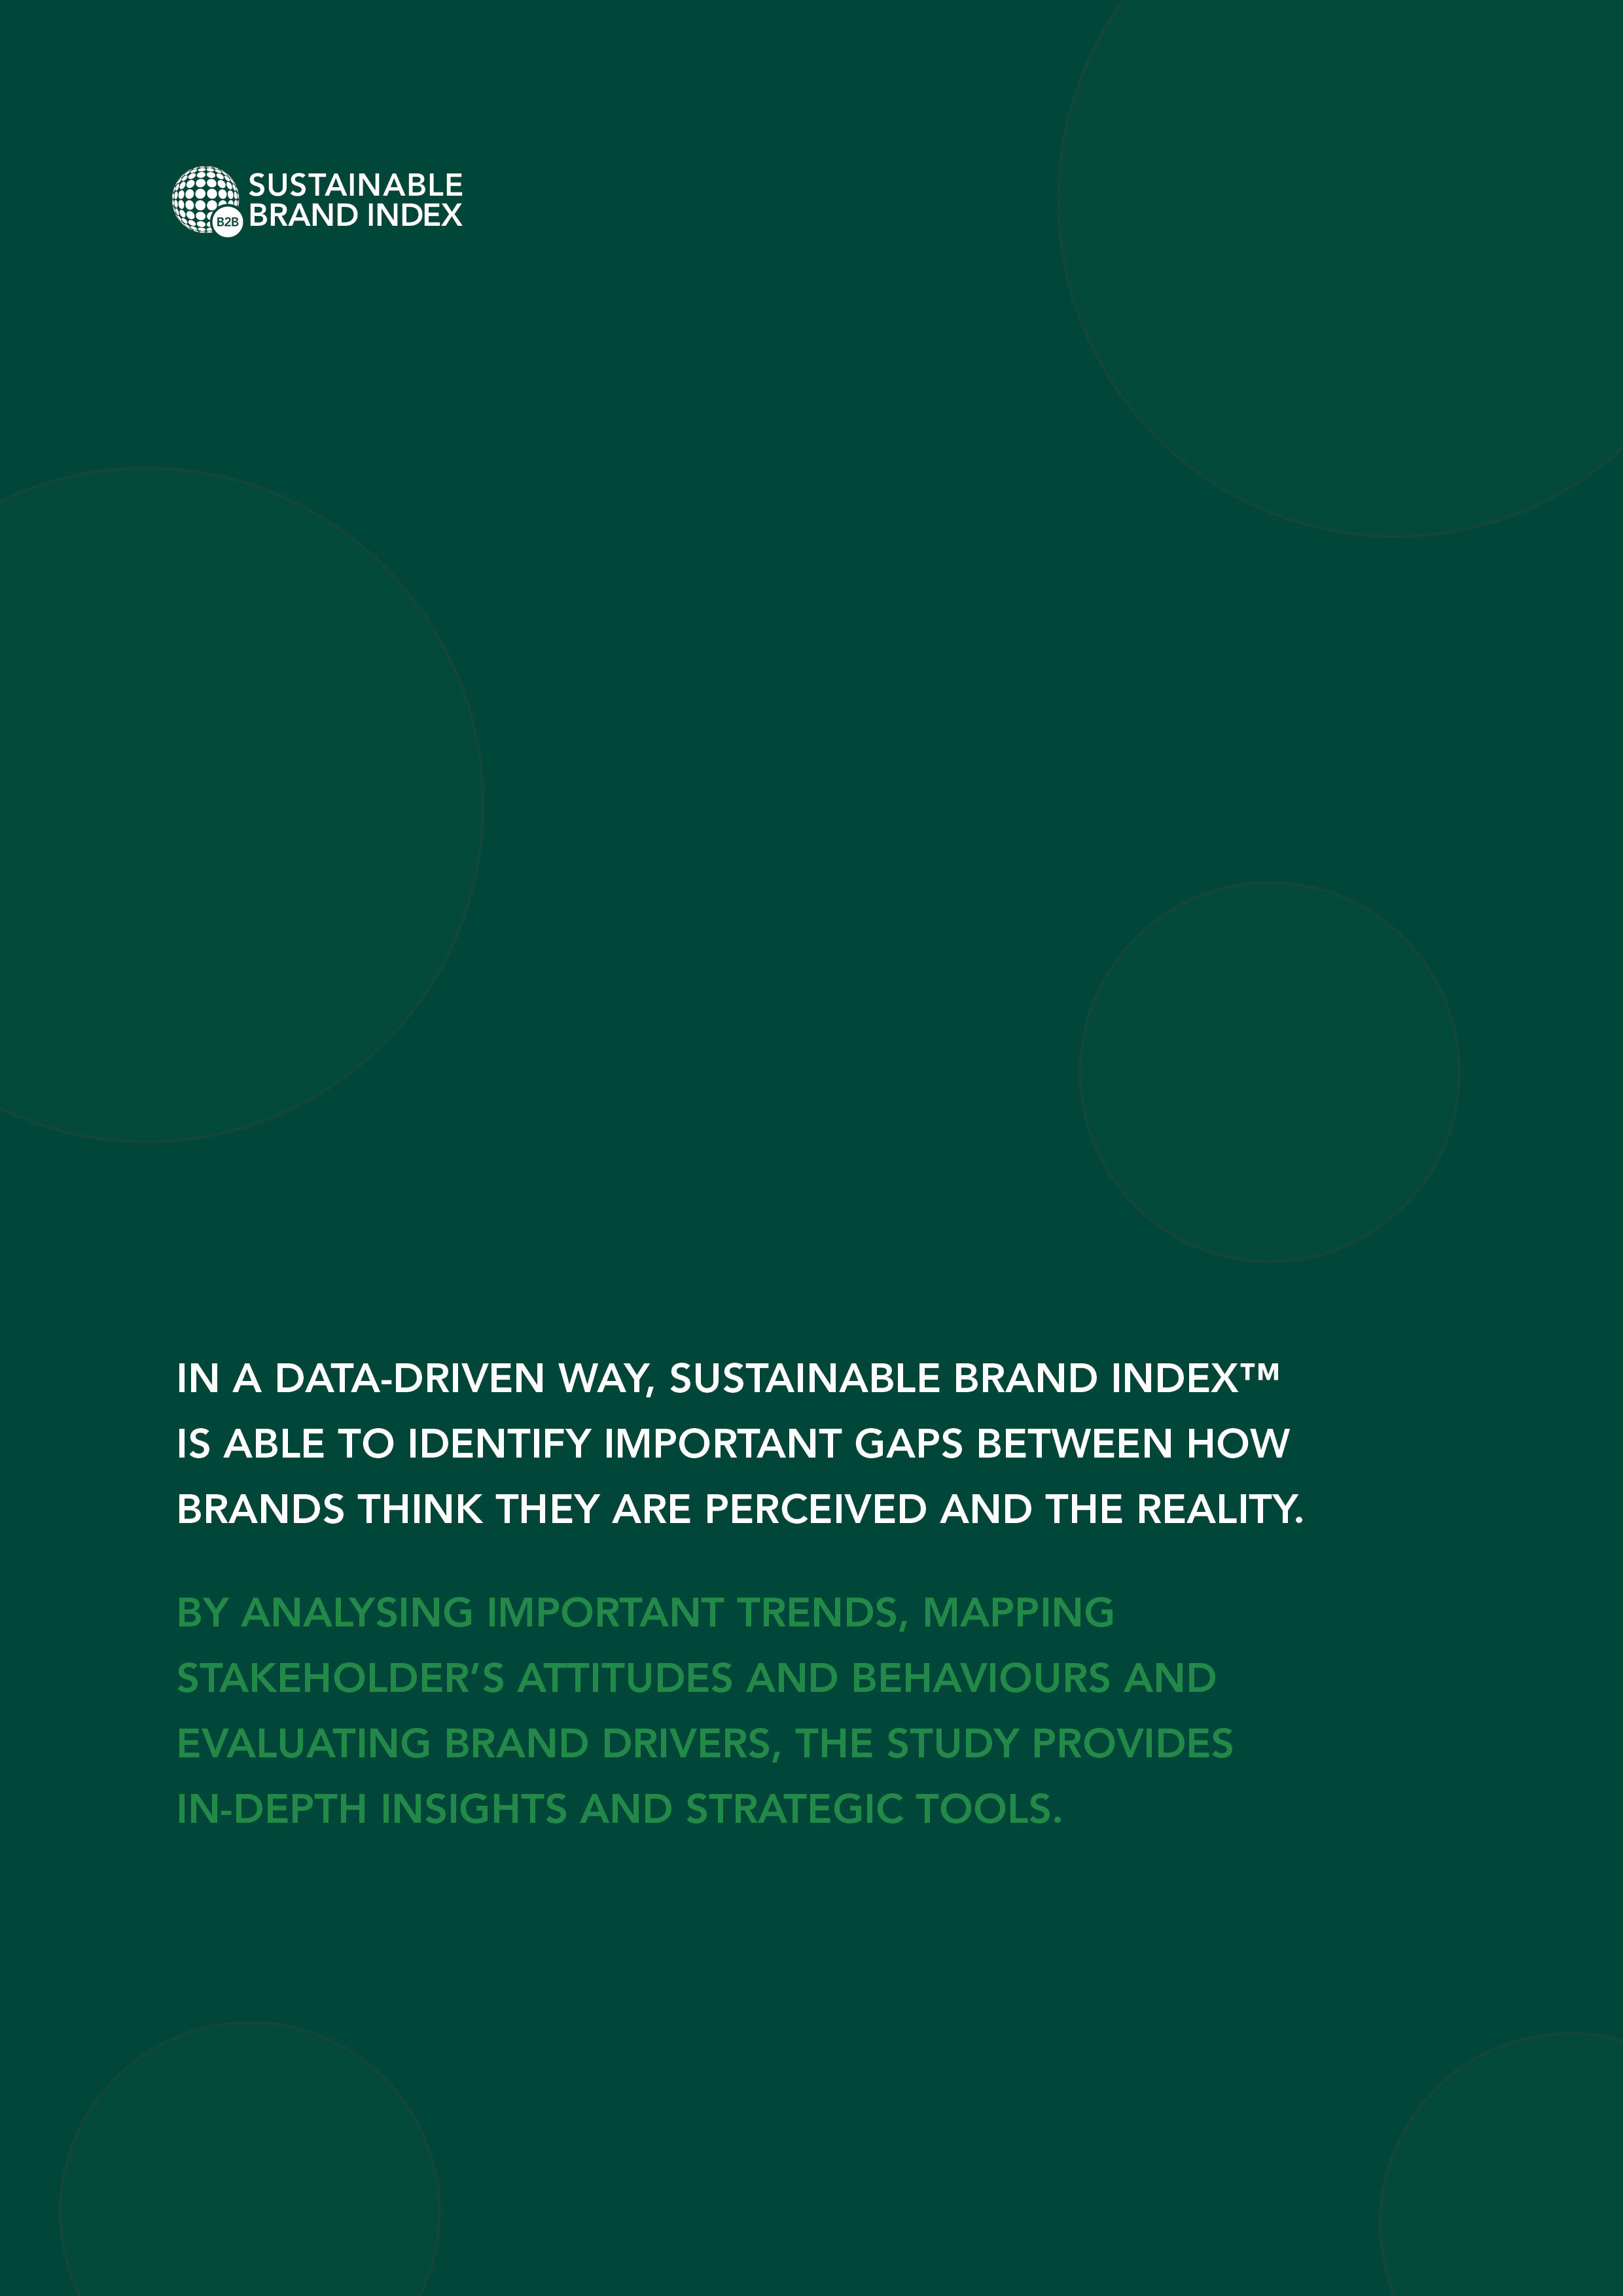 NO_Official Report_2021_Sustainable Brand Index13.jpg